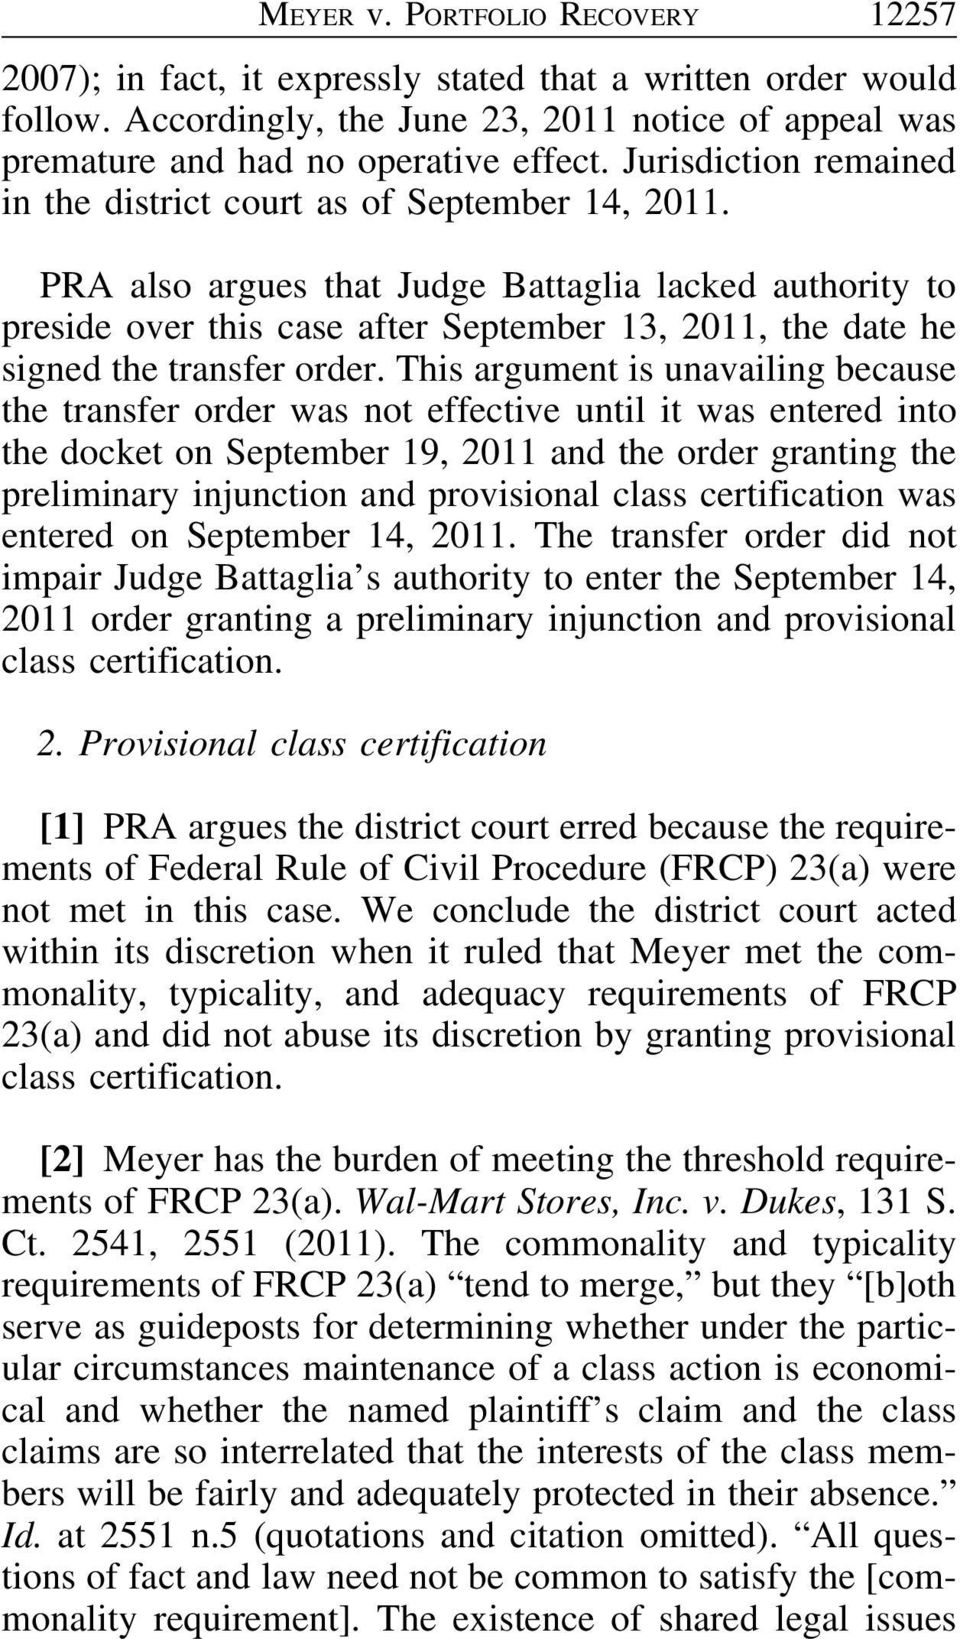 PRA also argues that Judge Battaglia lacked authority to preside over this case after September 13, 2011, the date he signed the transfer order.